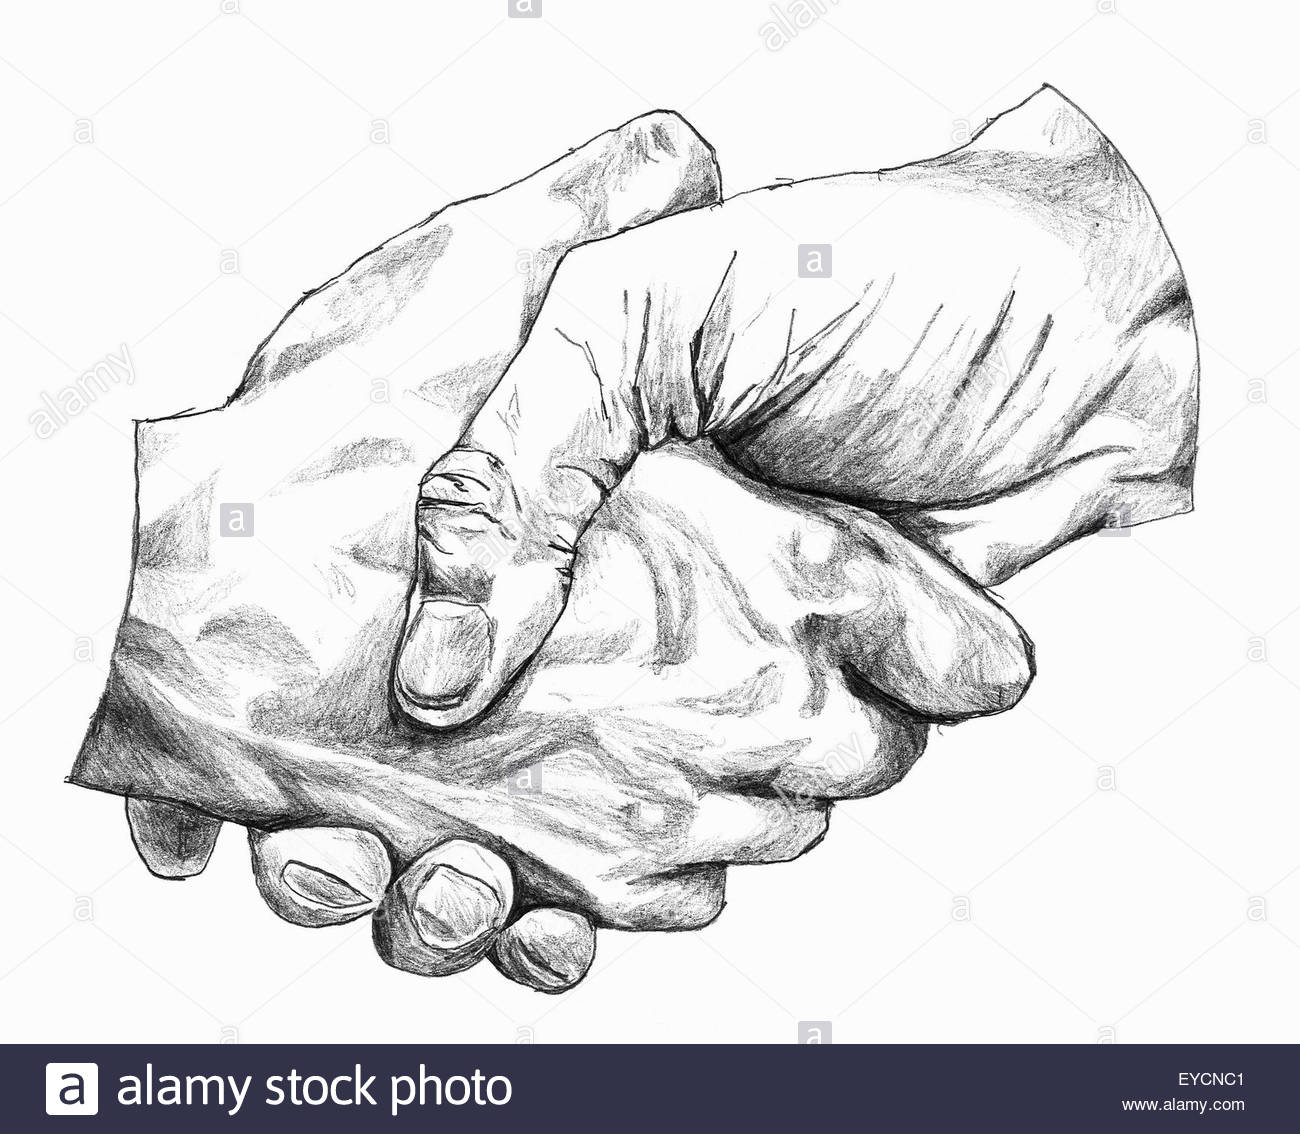 Close up pencil drawing of shaking hands - Stock Image